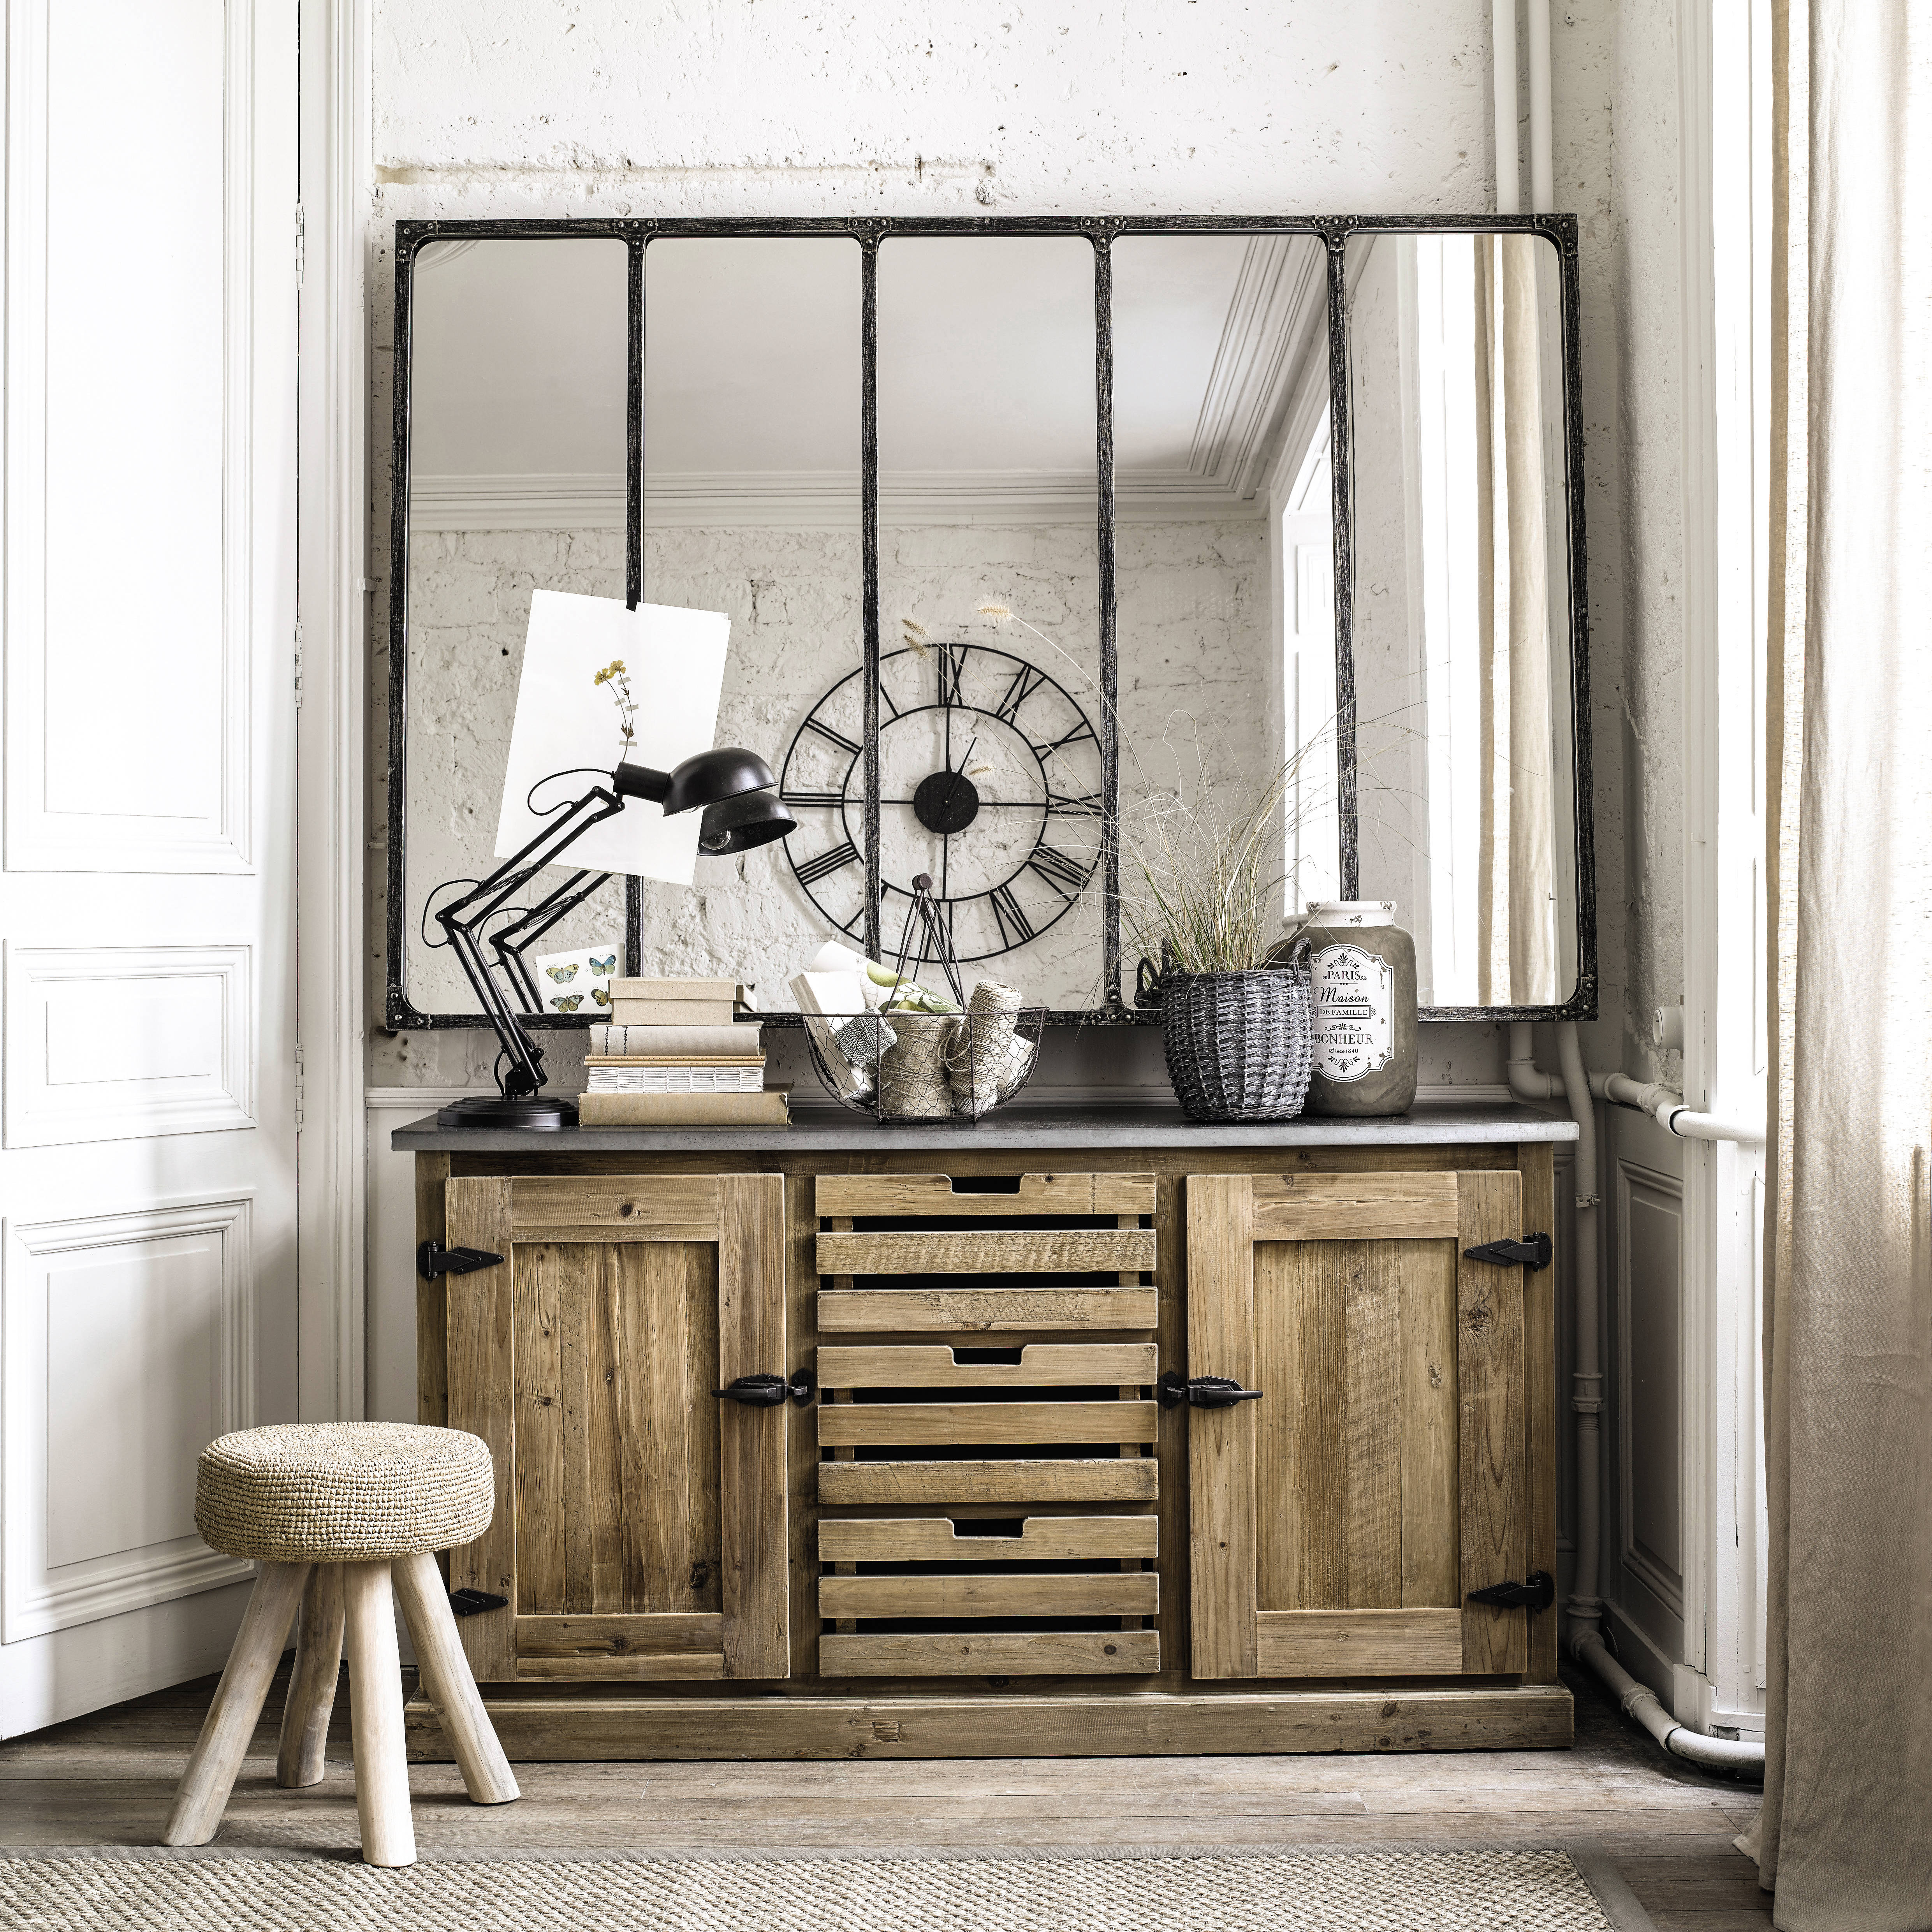 miroir verriere maison du monde id es de d coration. Black Bedroom Furniture Sets. Home Design Ideas